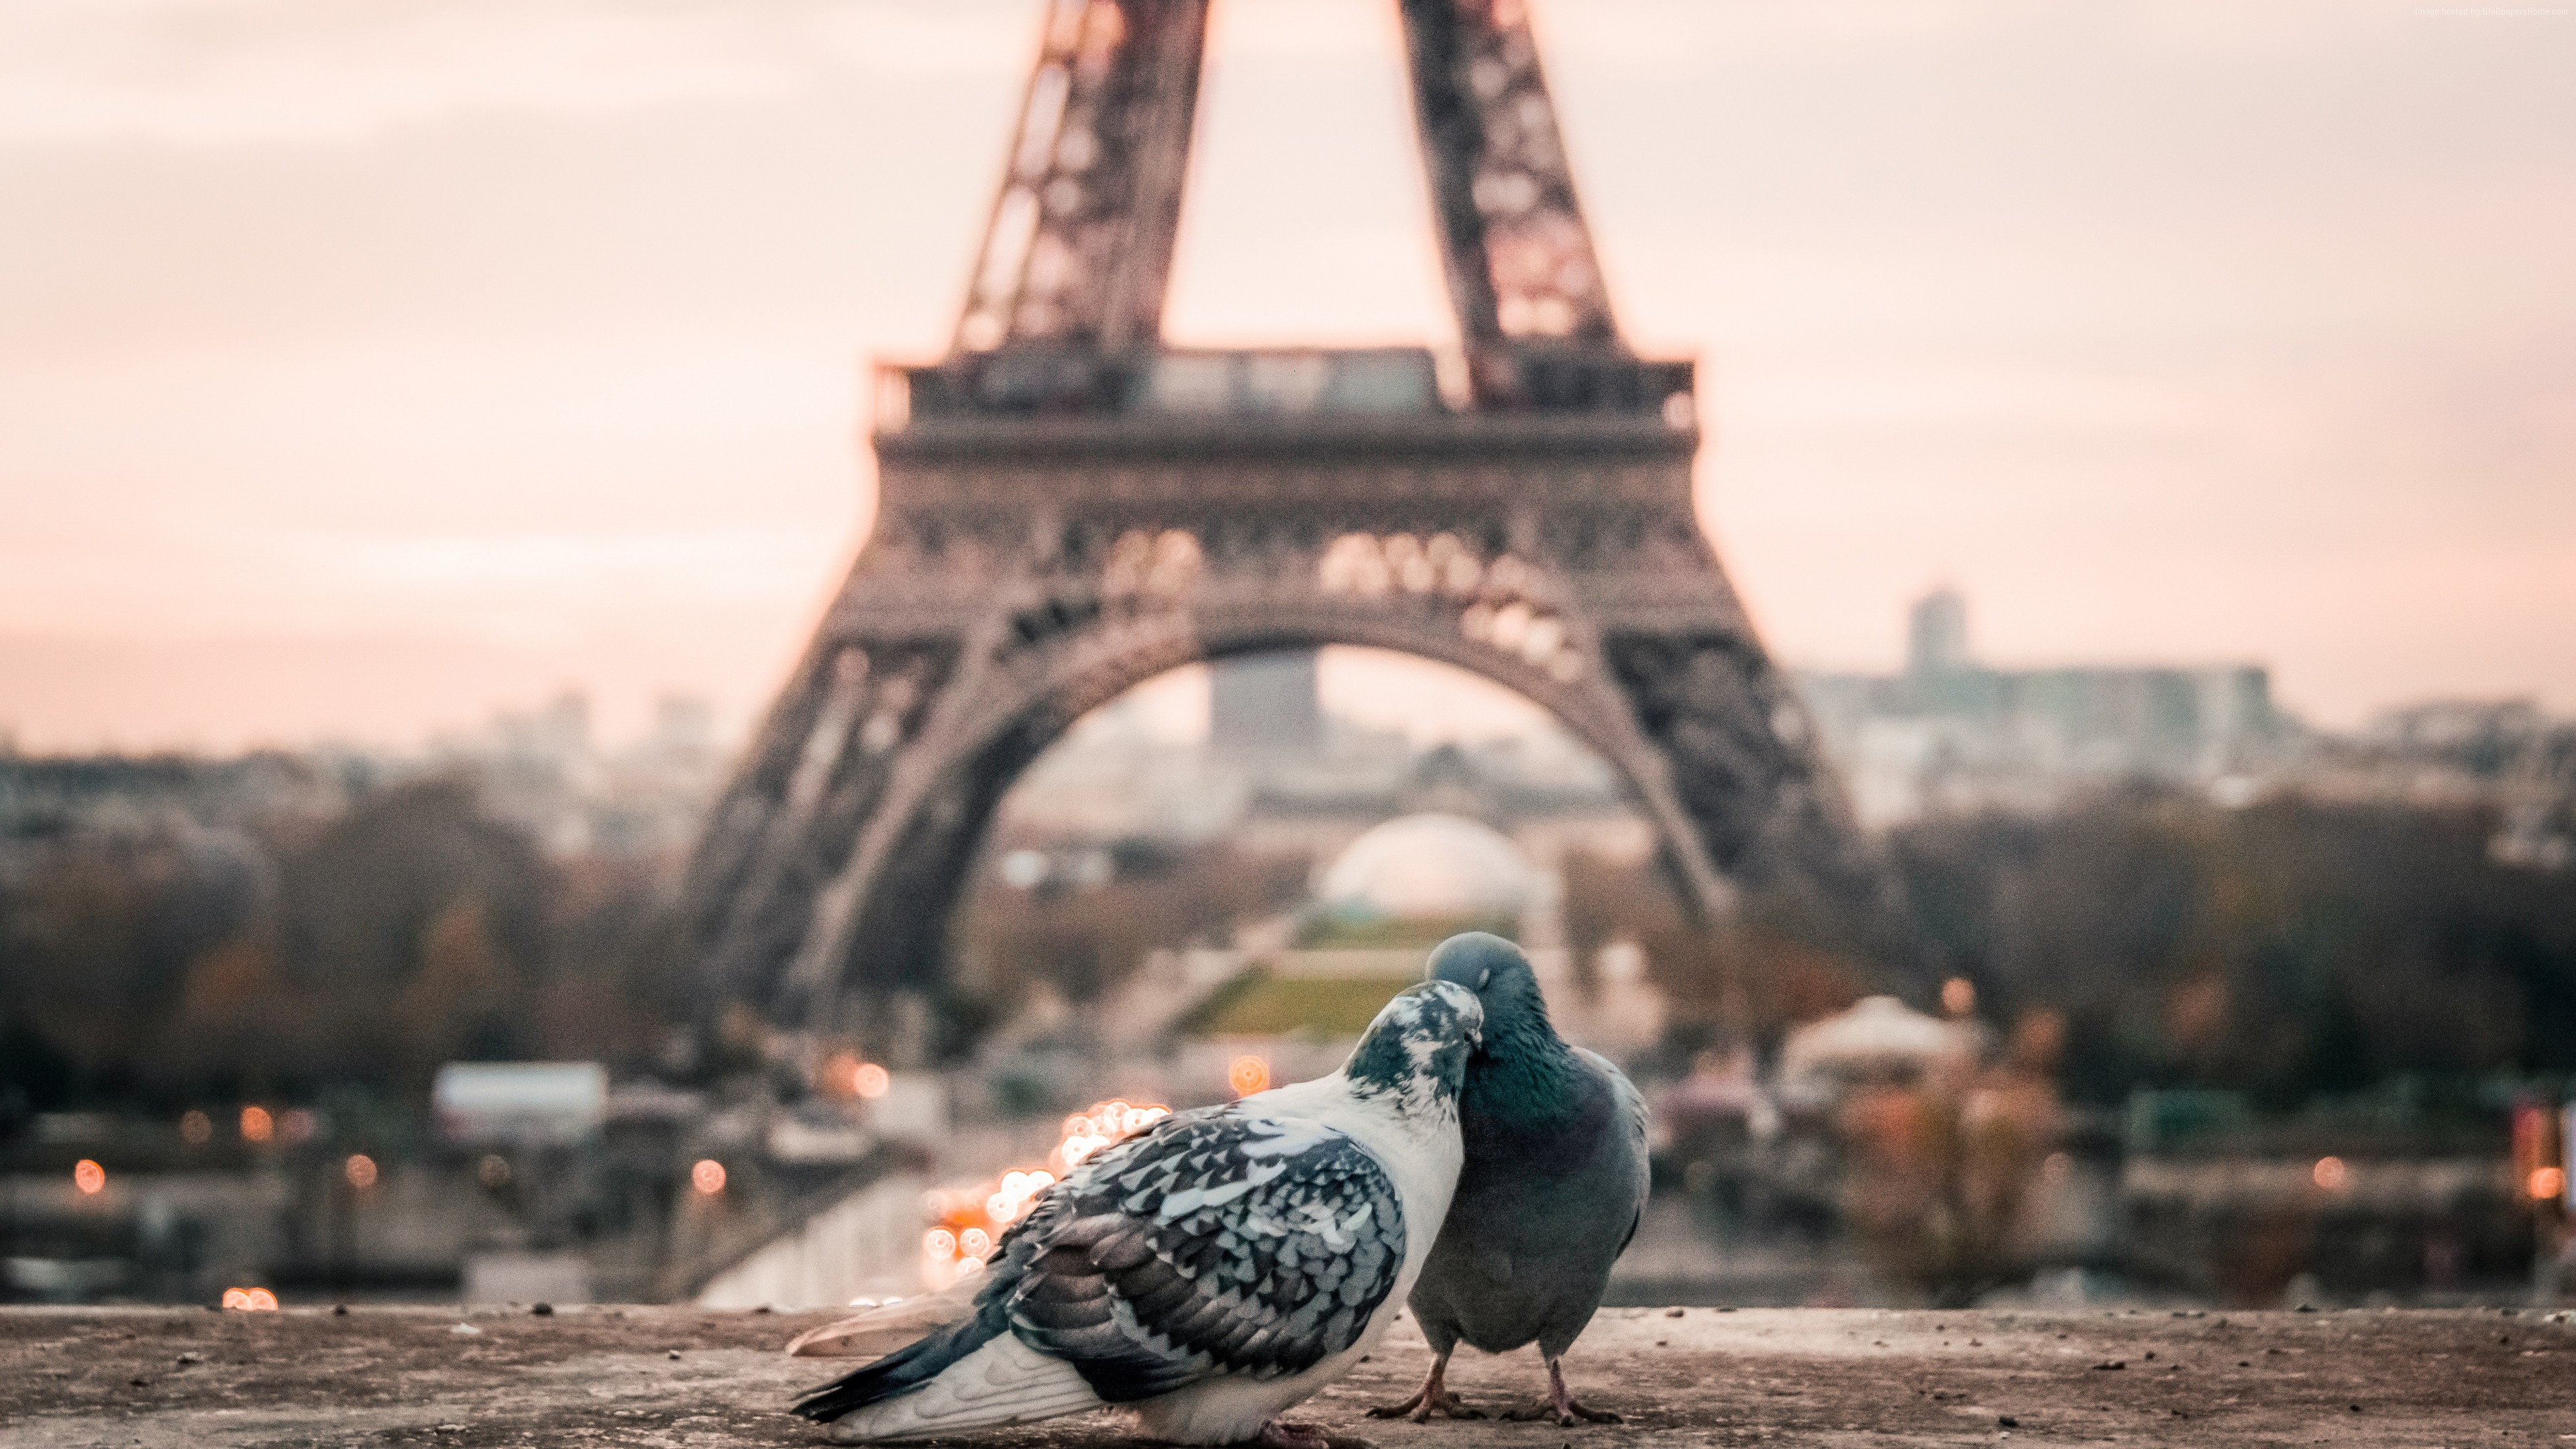 Stock Images Love Image Doves 4k Paris Stock Images Wallpaper Download High Resolution 4k Wallpaper